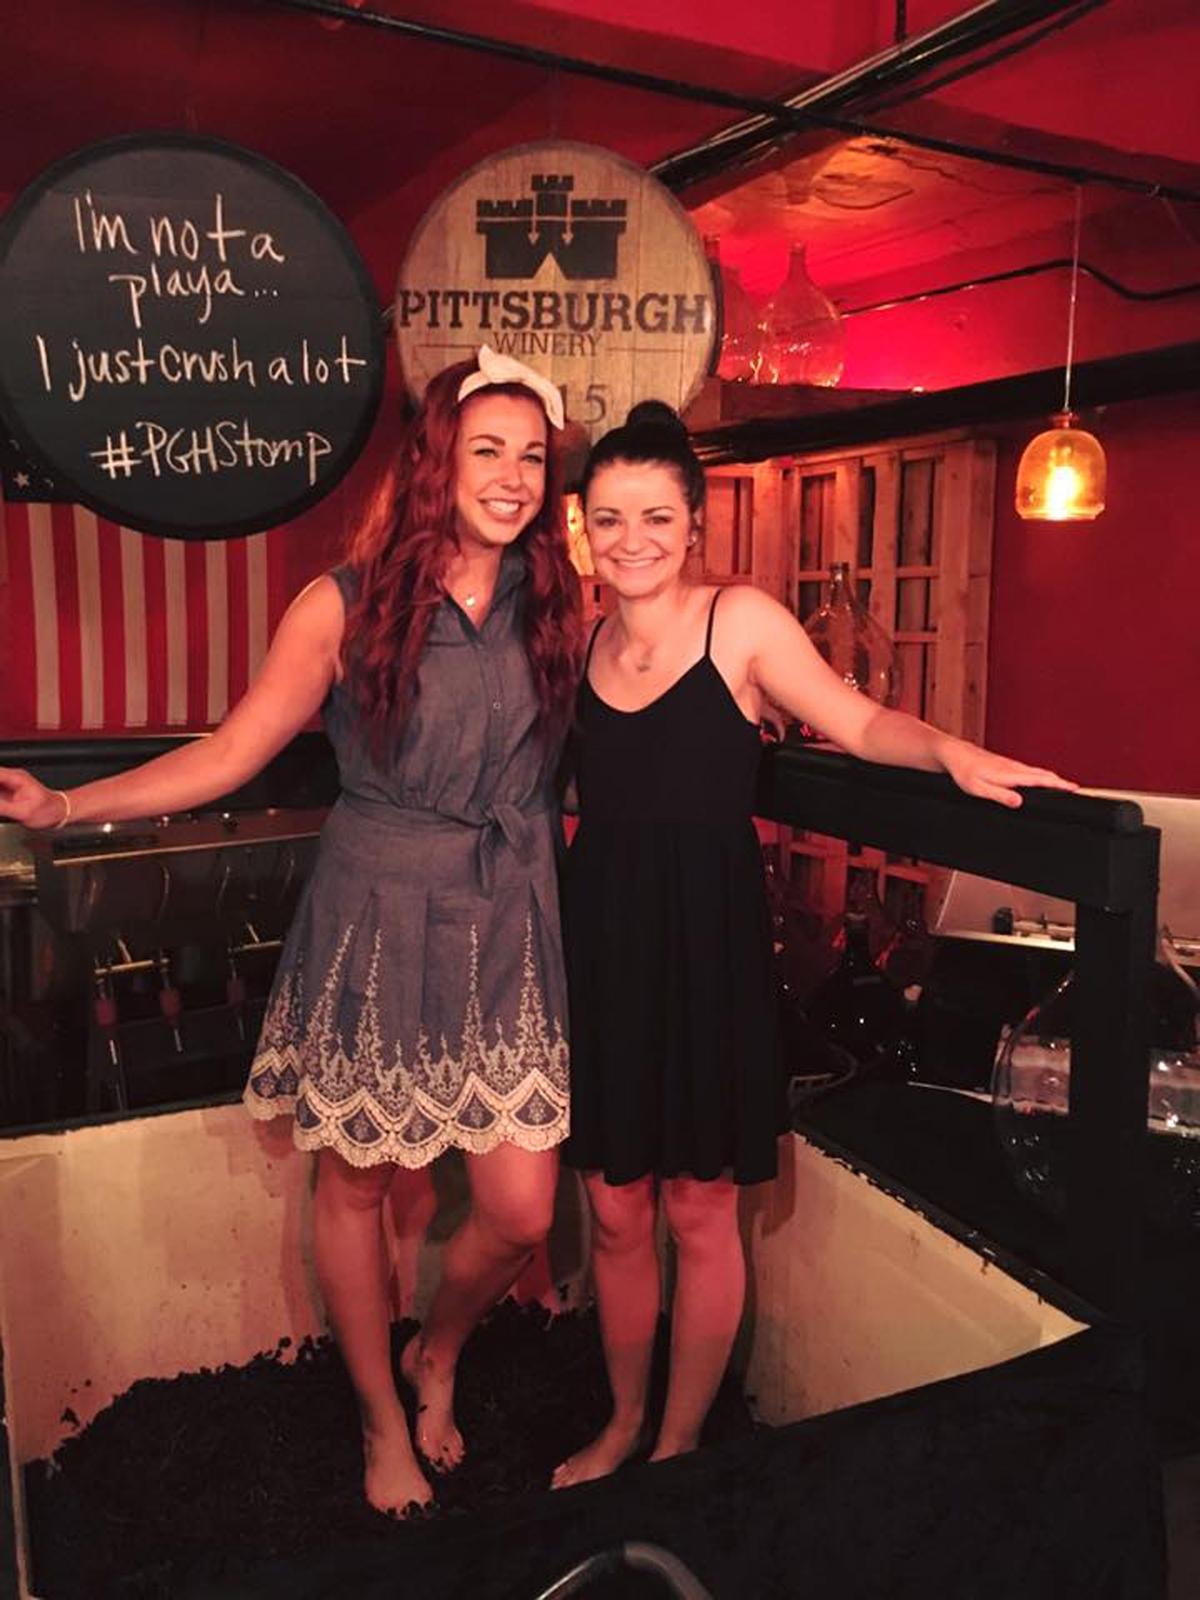 We don't actually use our feet to stomp the grapes but we do if for fun sometimes. Rachel Travisano and Katie Sayers will be happy to guide a tasting for you in our tasting room or cellar.